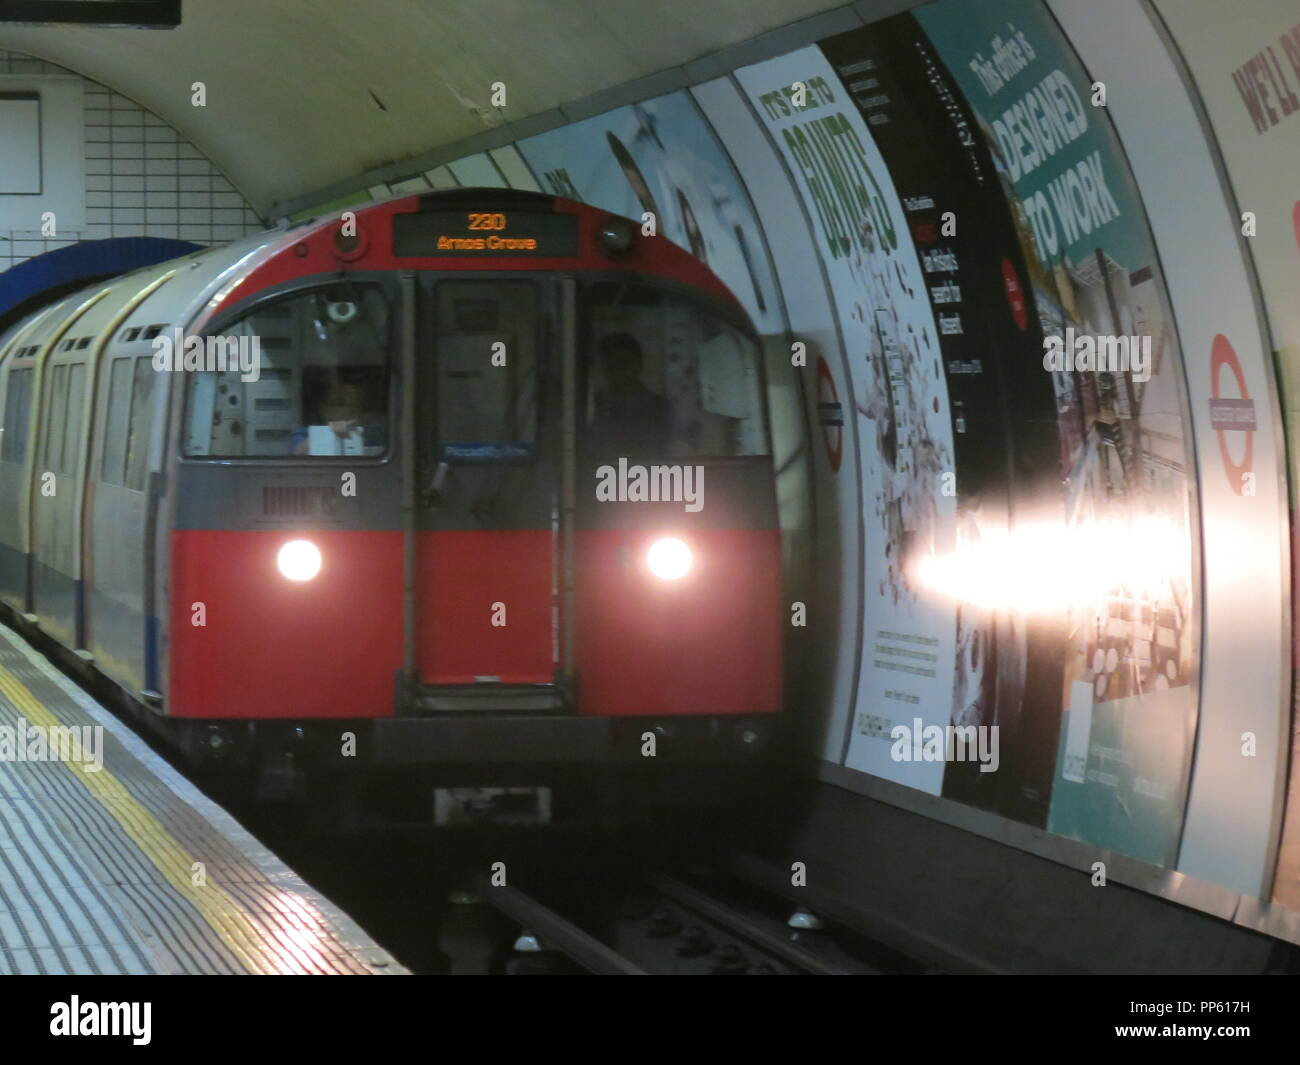 A London tube train arrives at Leicester Square on the Piccadilly Line, heading towards its final destination, Arnos Grove. - Stock Image